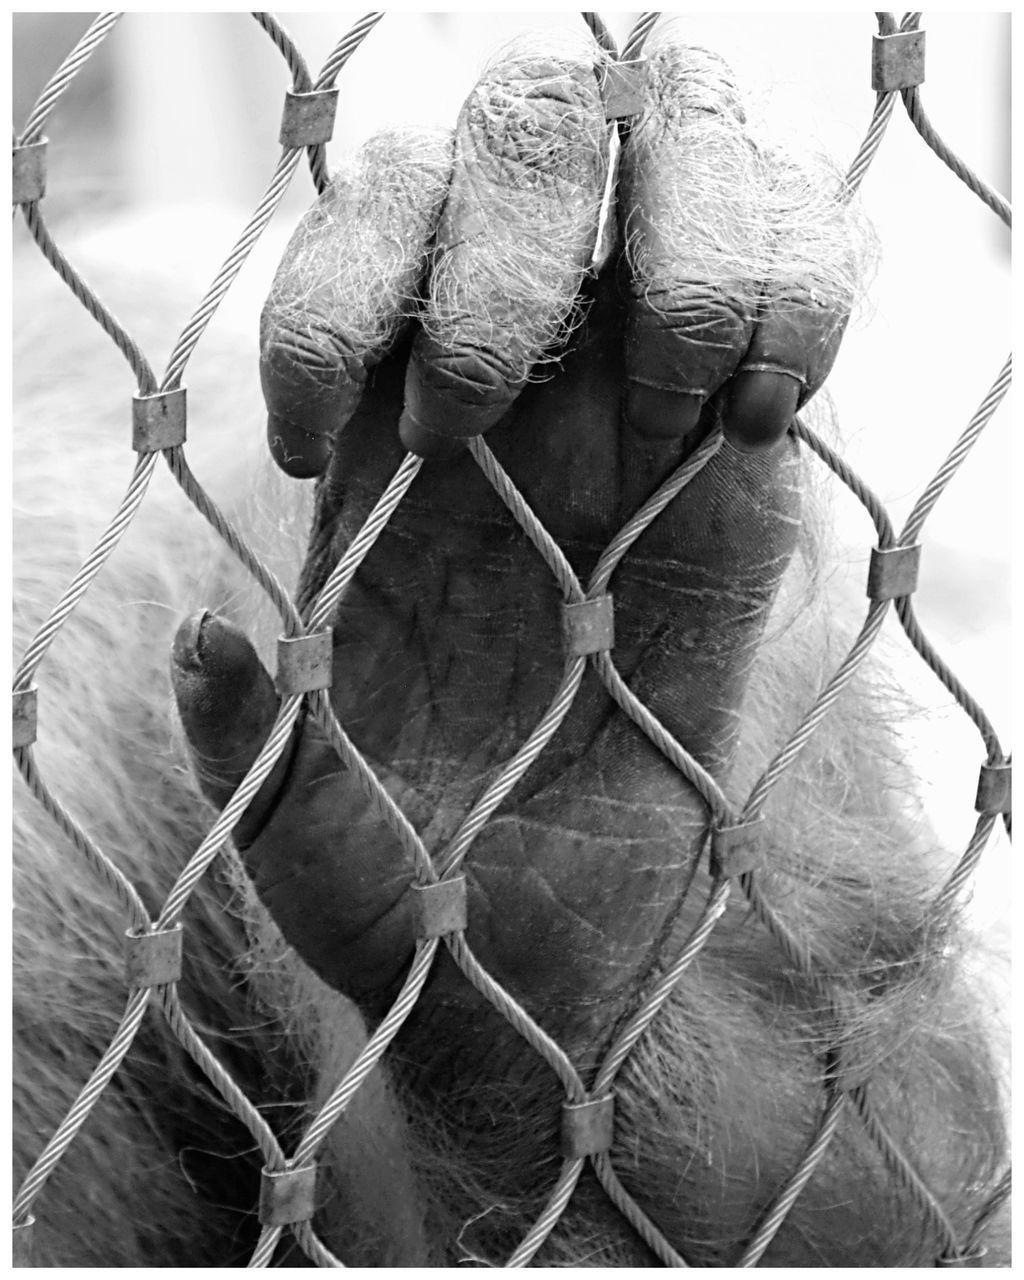 fence, chainlink fence, boundary, protection, barrier, security, no people, close-up, safety, day, focus on foreground, metal, pattern, nature, animal themes, animal, outdoors, animal wildlife, vertebrate, wire